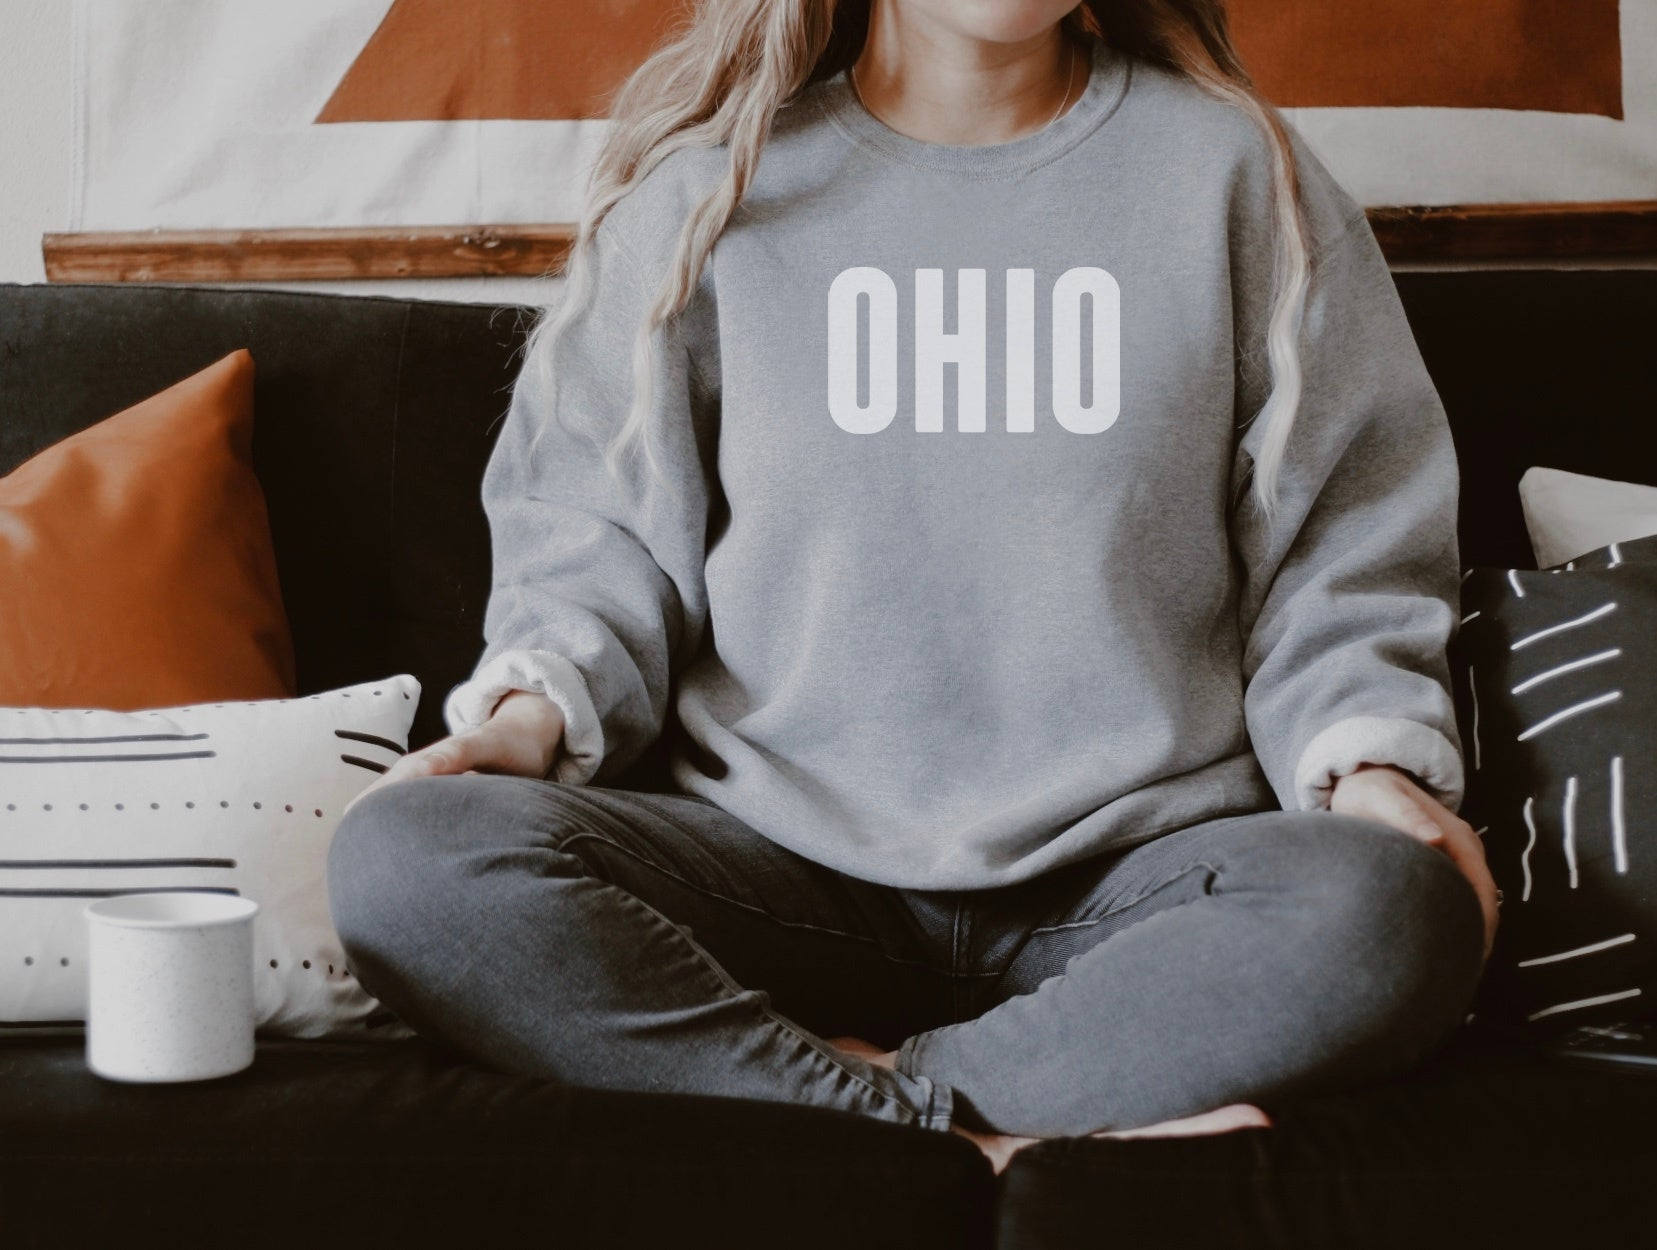 Caps Ohio Fleece Sweatshirt